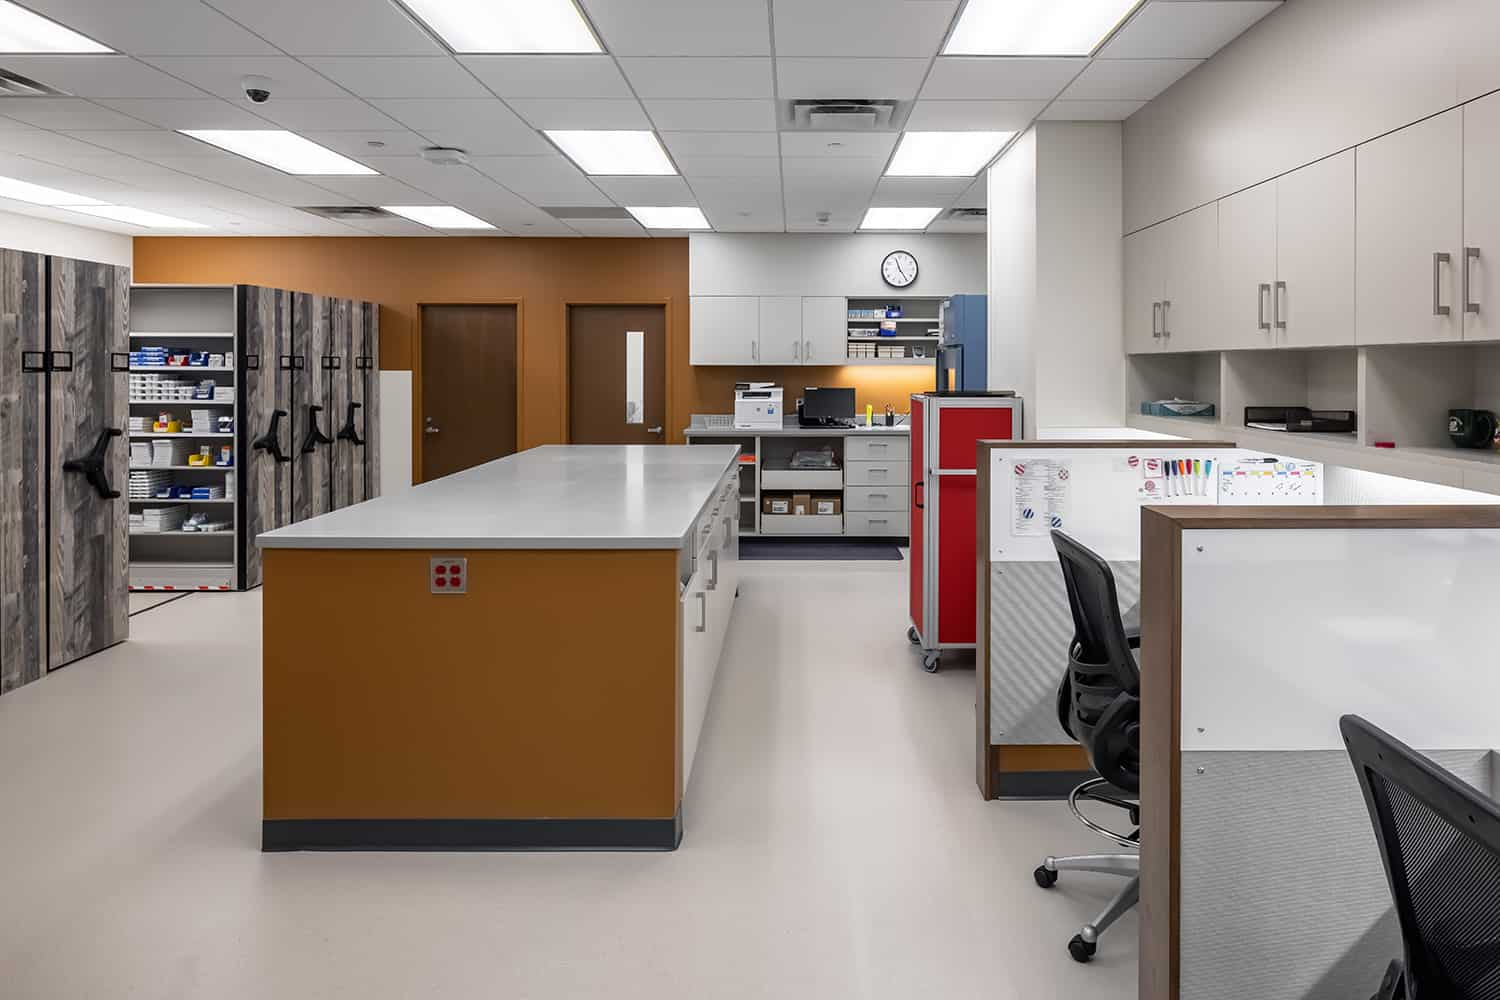 The new pharmacy space with rolling storage shelves and staff workstations.